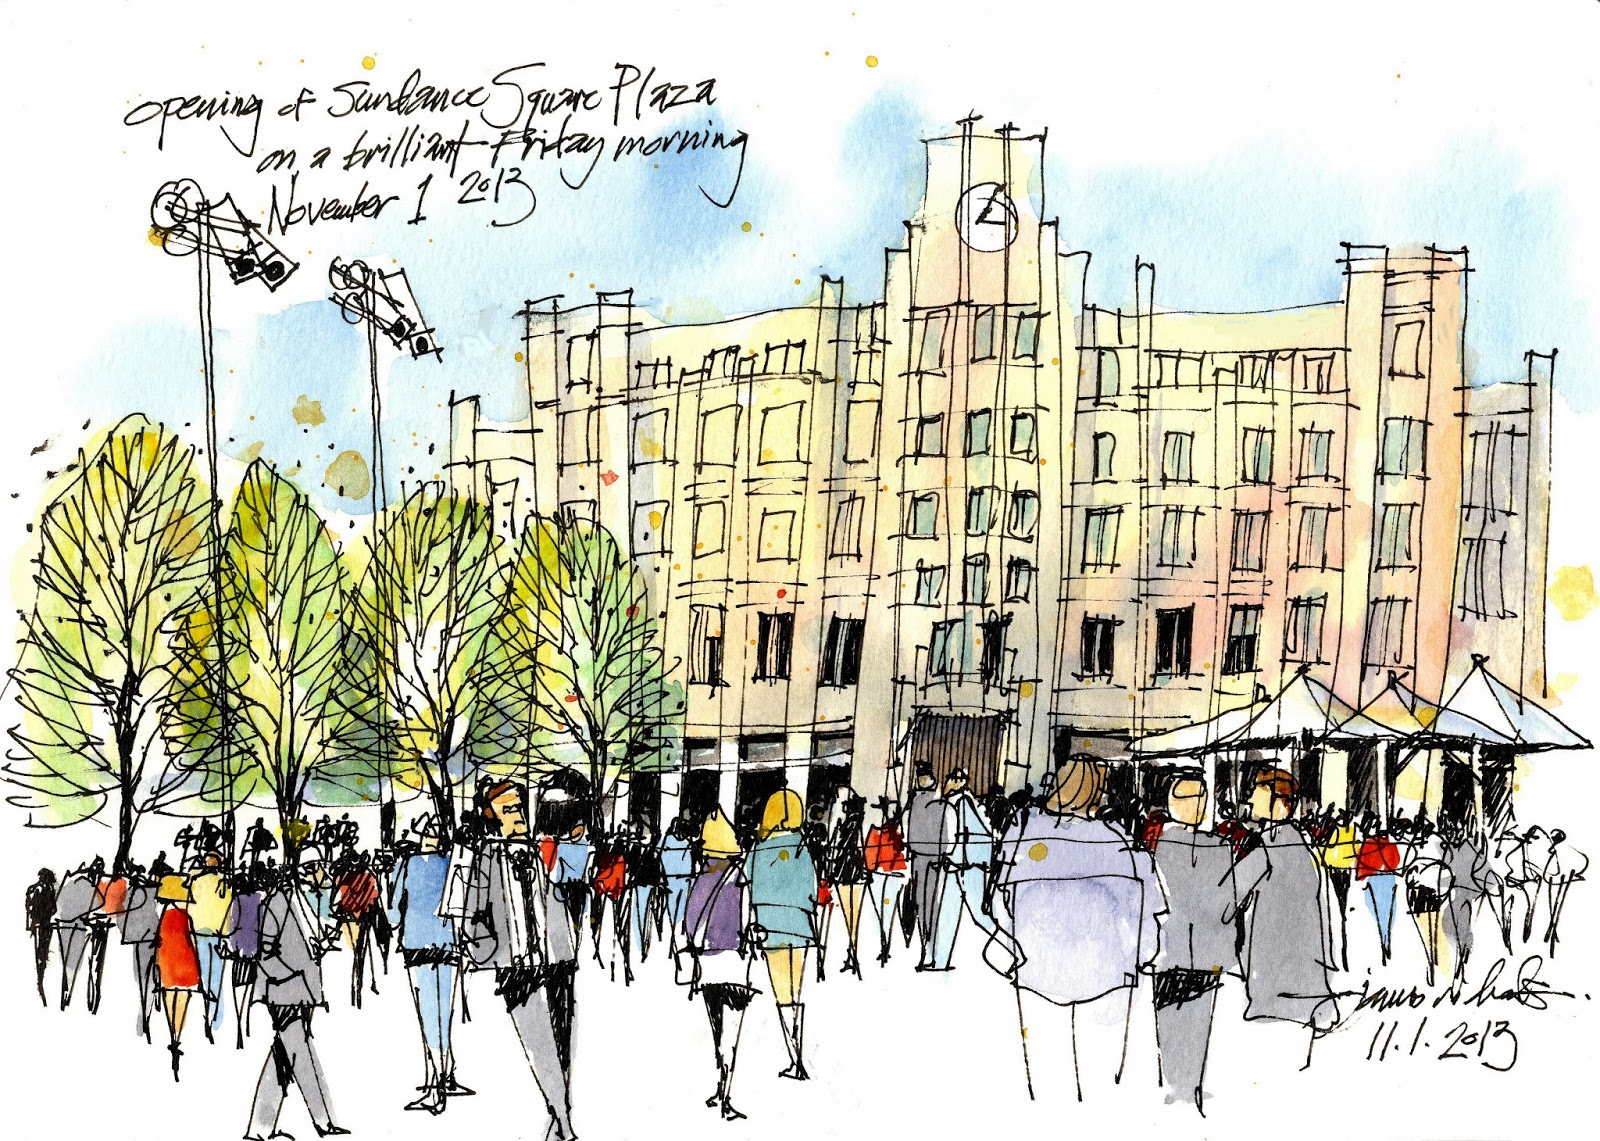 Urban sketchers texas sundance square plaza opens in for Grand home designs fort worth